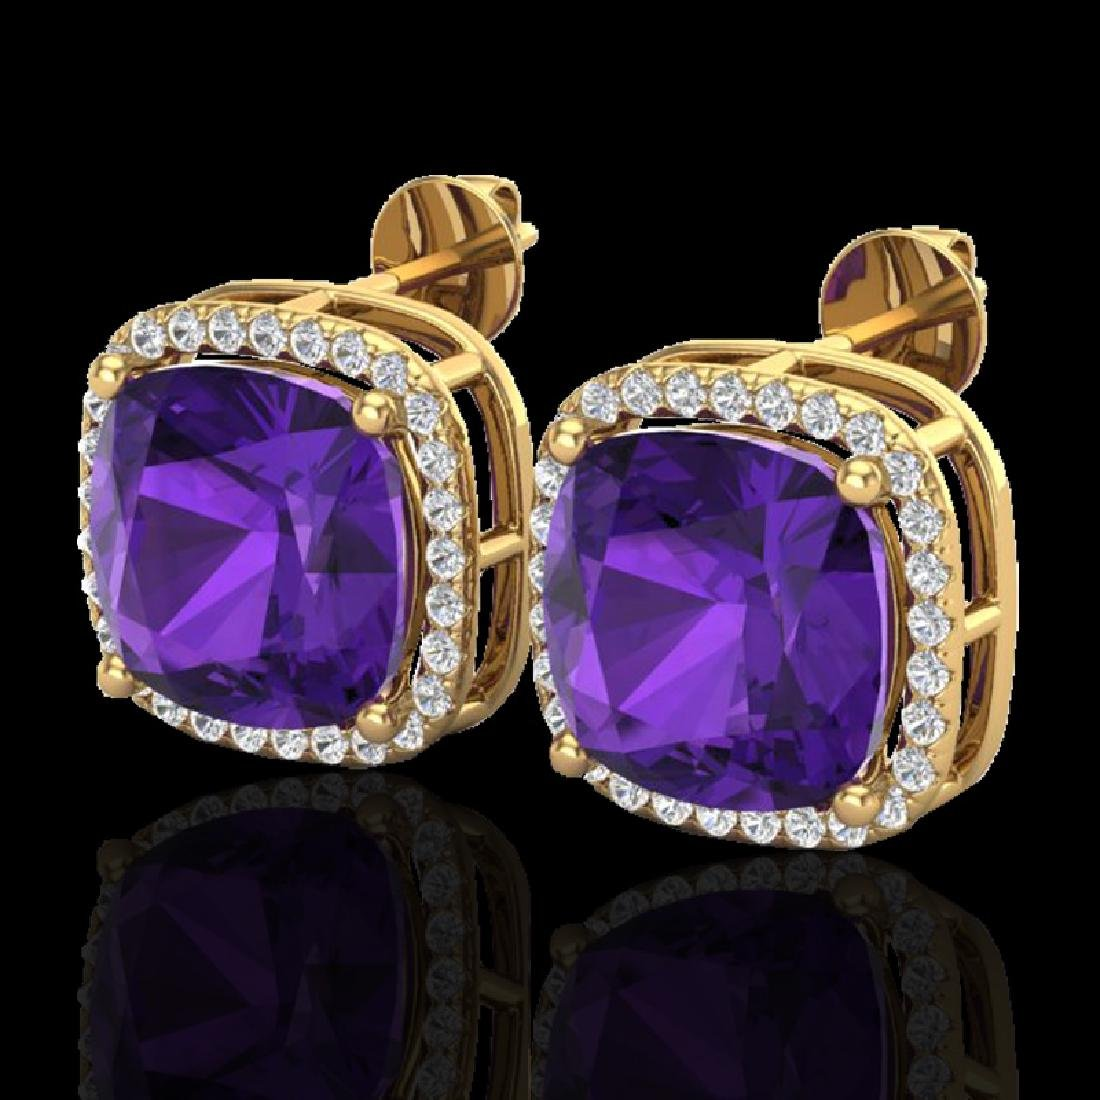 12 CTW Amethyst & Micro Pave Halo VS/SI Diamond